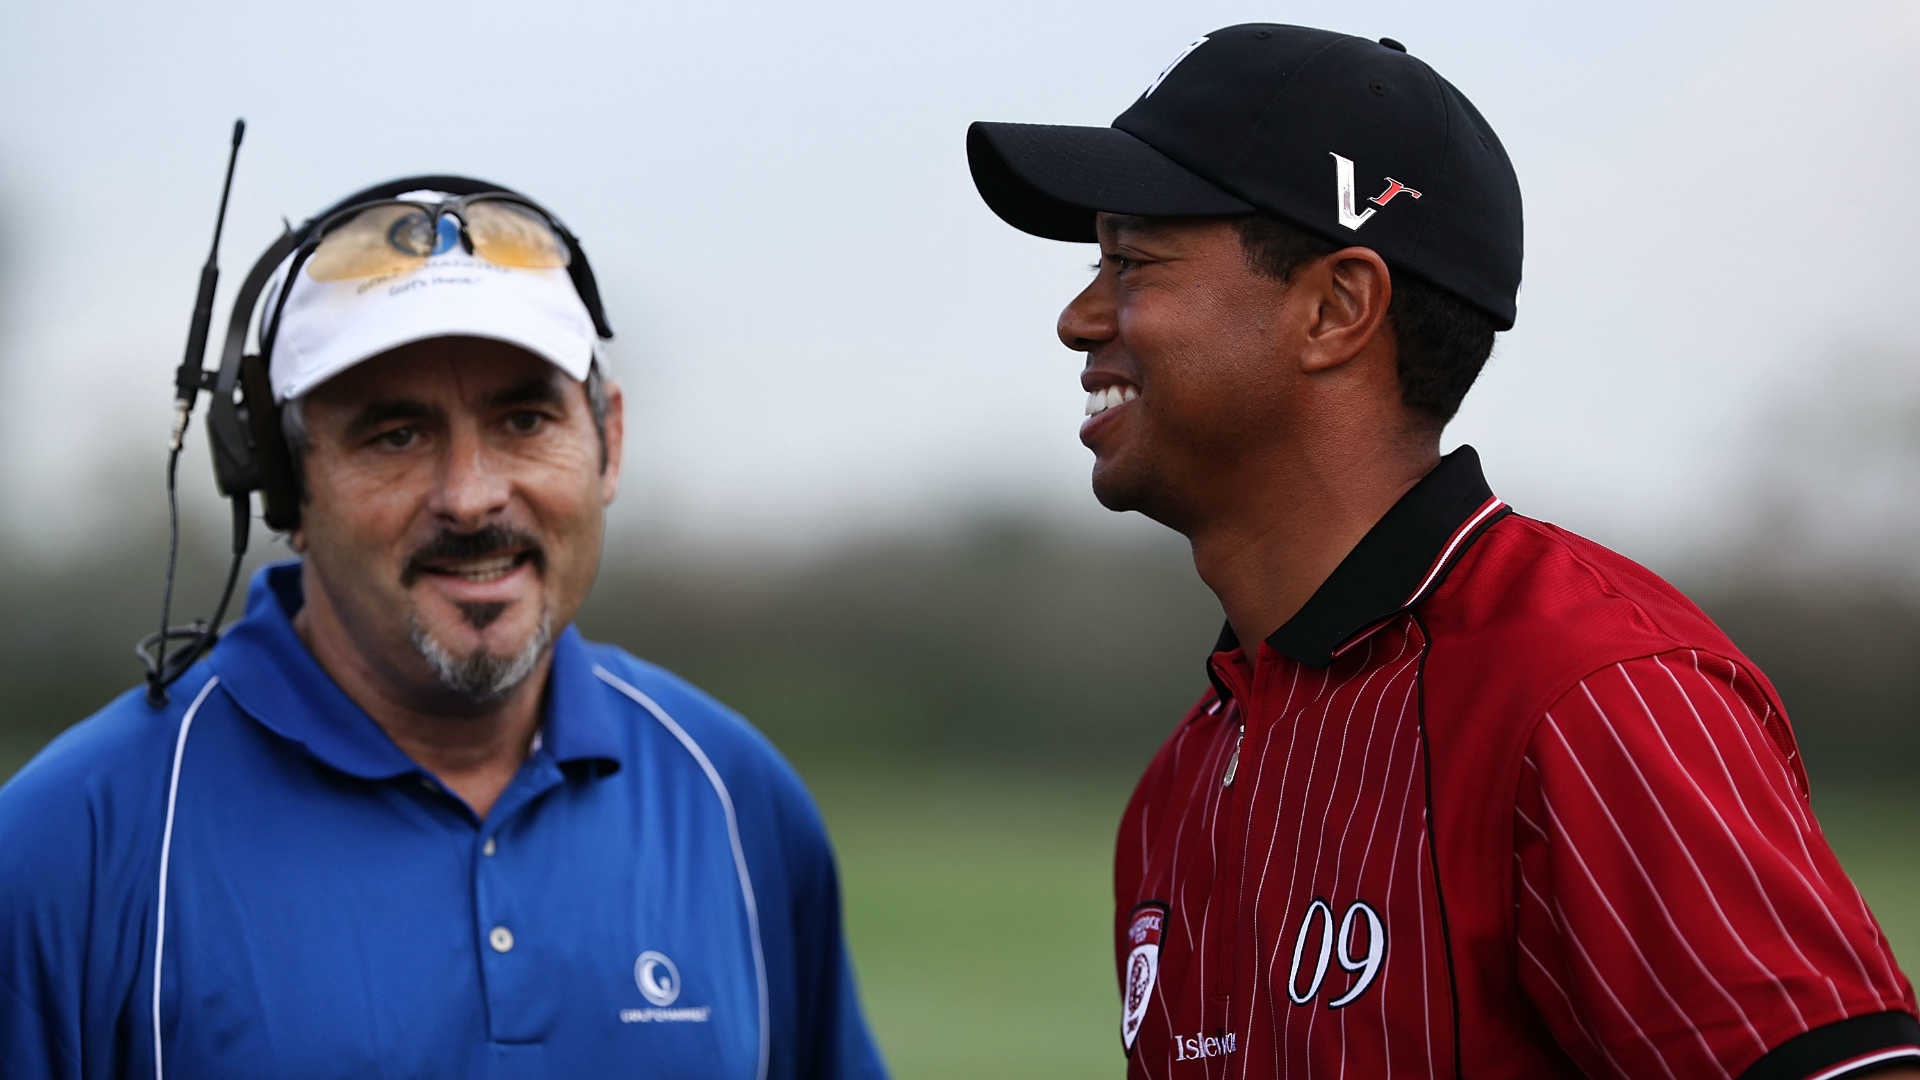 David Feherty, left, and Tiger Woods